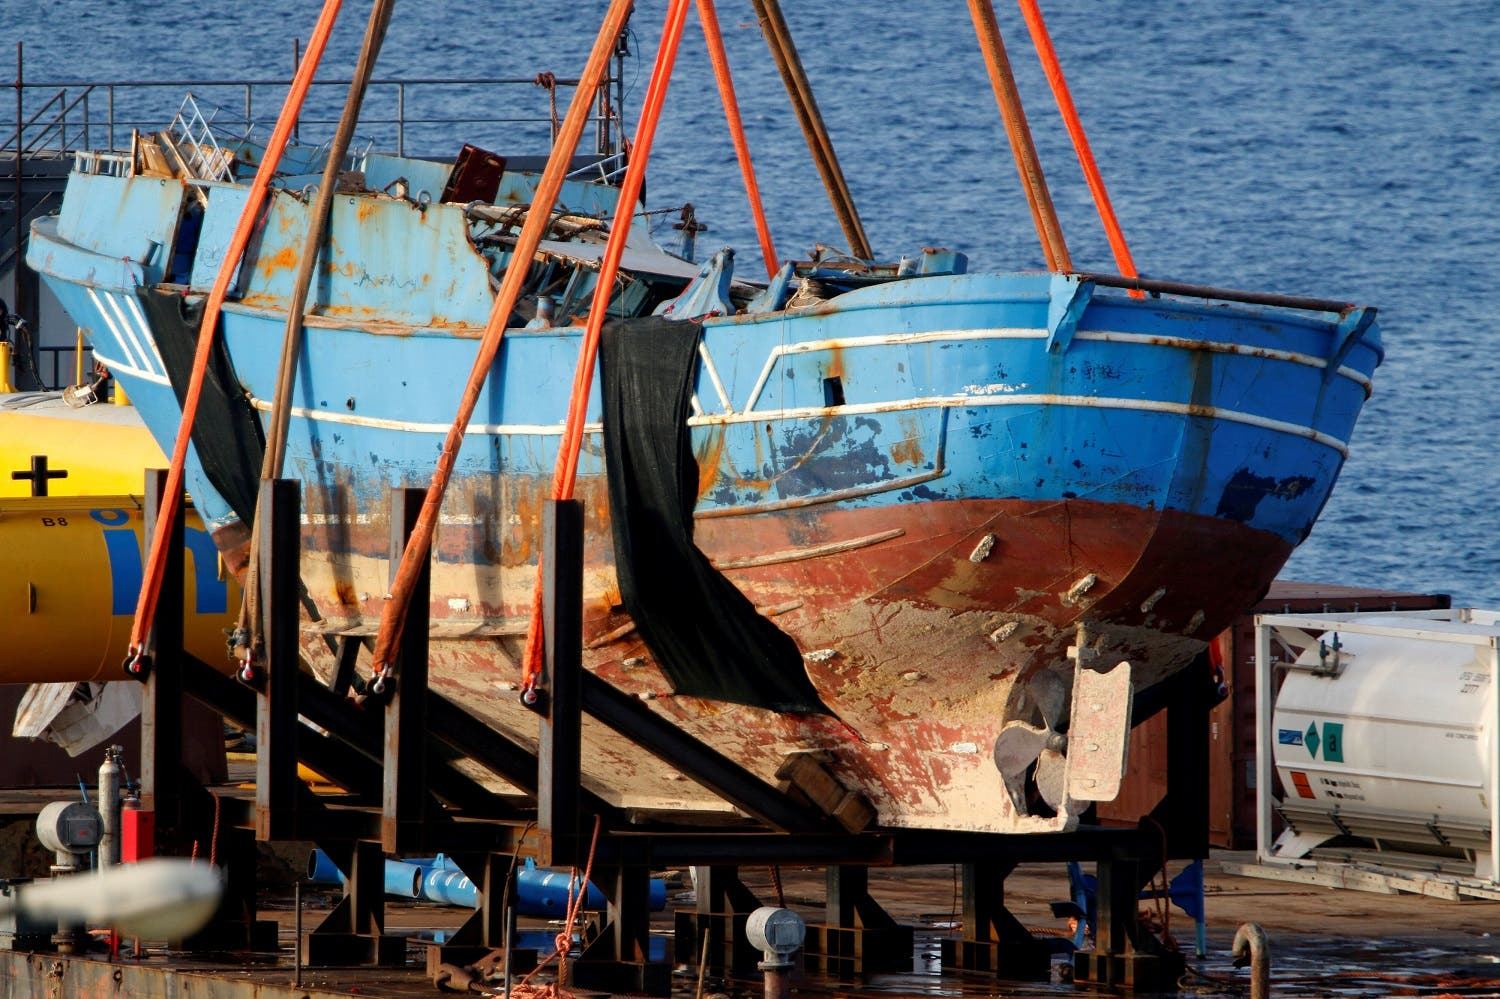 The wreck of a fishing boat that sank in April 2015, drowning hundreds of migrants packed on board, is seen after being raised in the Sicilian harbour of Augusta, Italy, July 1, 2016. REUTERS